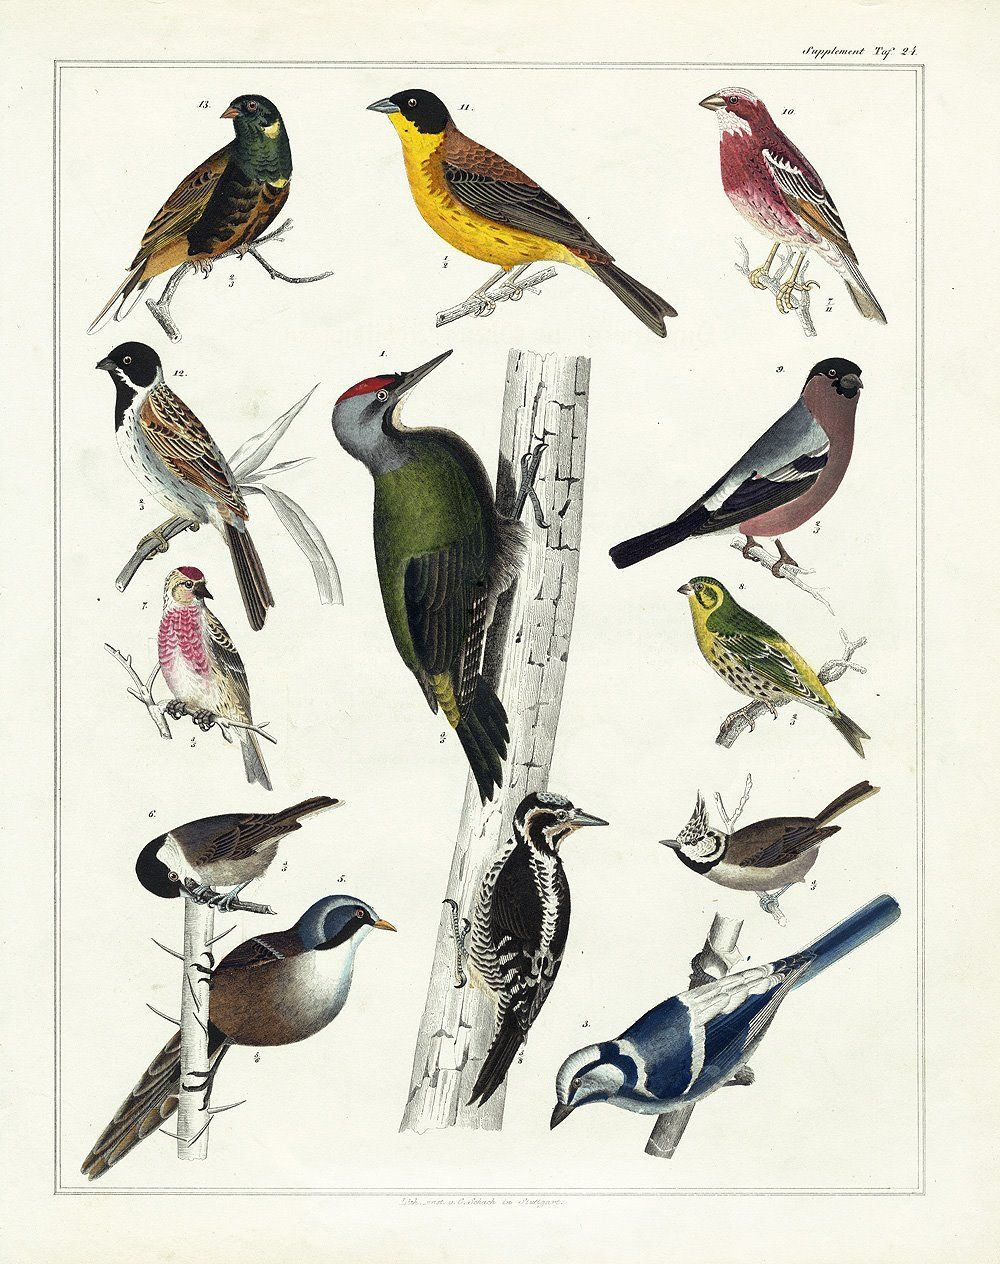 Over 25 Free Vintage Bird Printable Images | Remodelaholic #art - Free Printable Images Of Birds